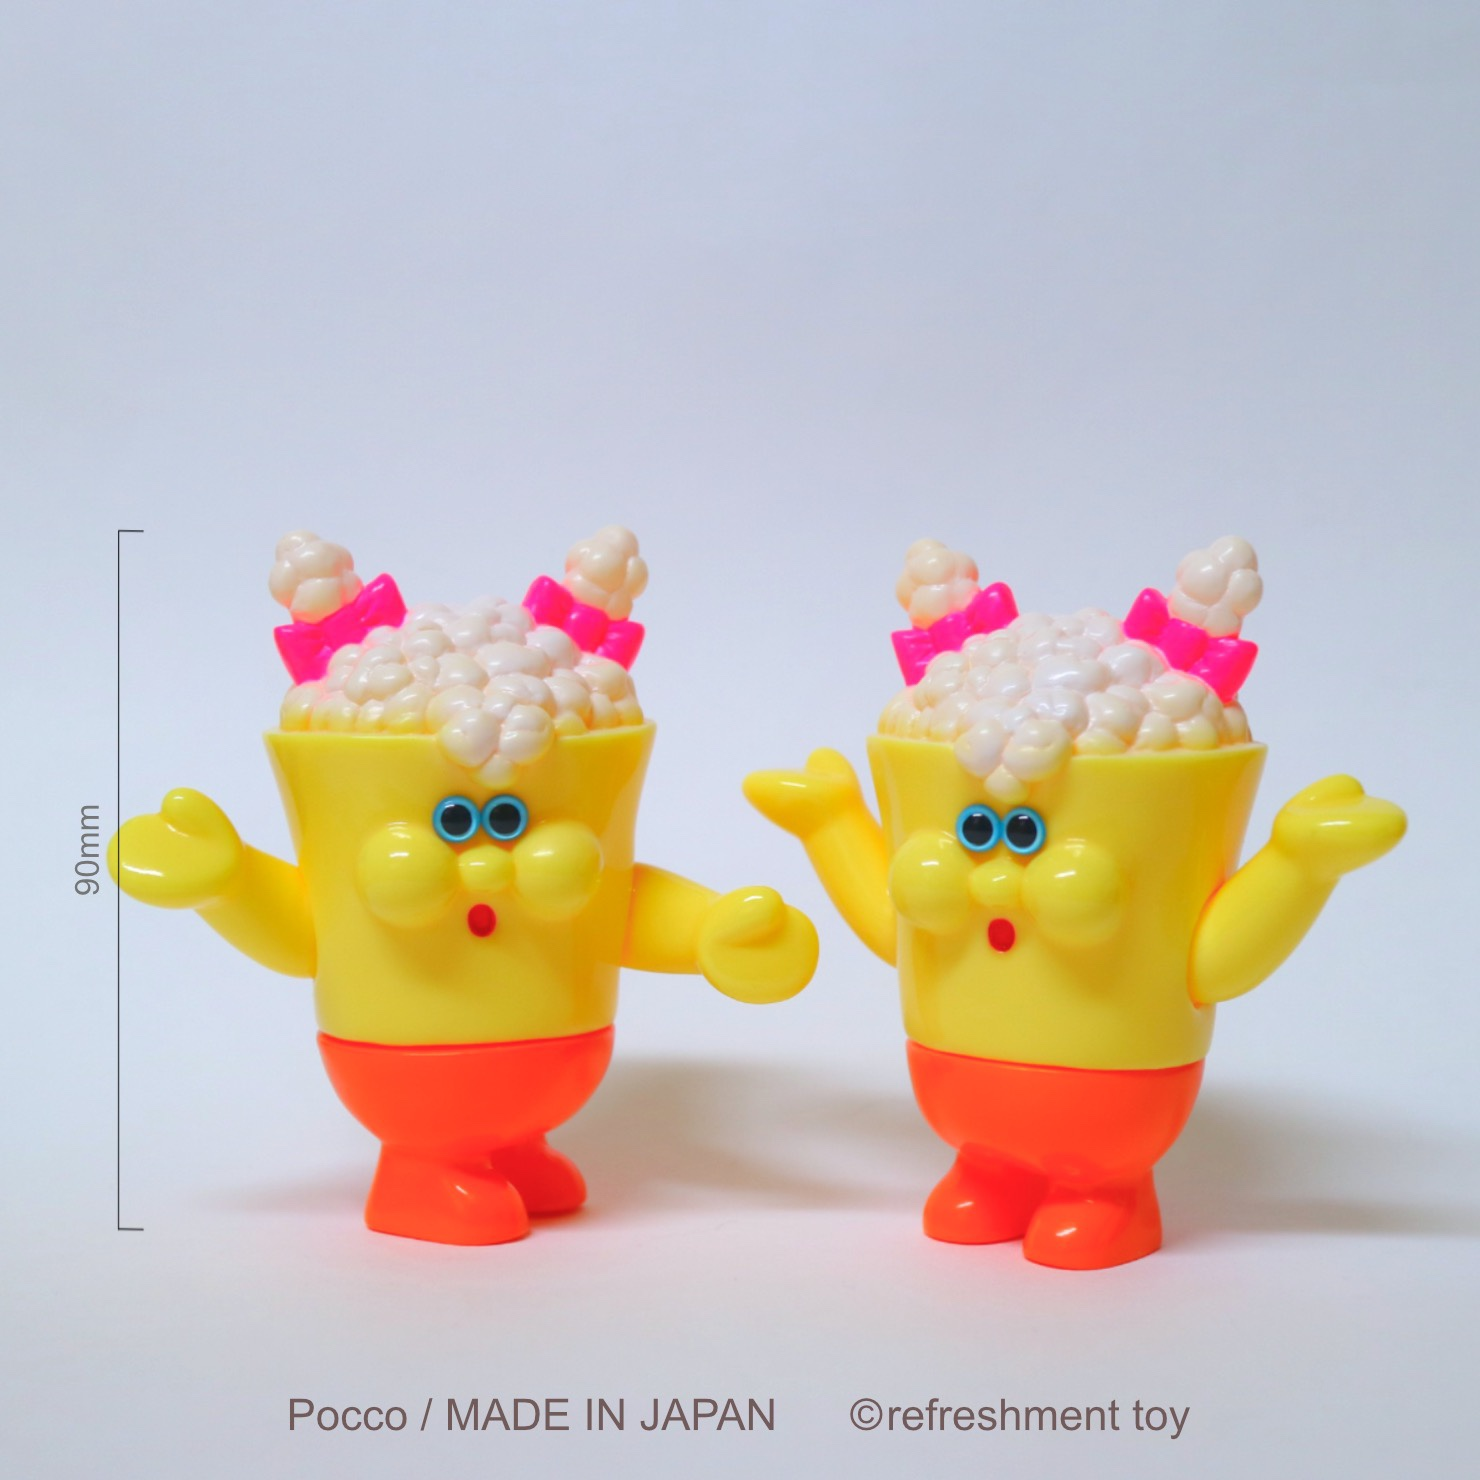 made in japan sofubi refreshment toy